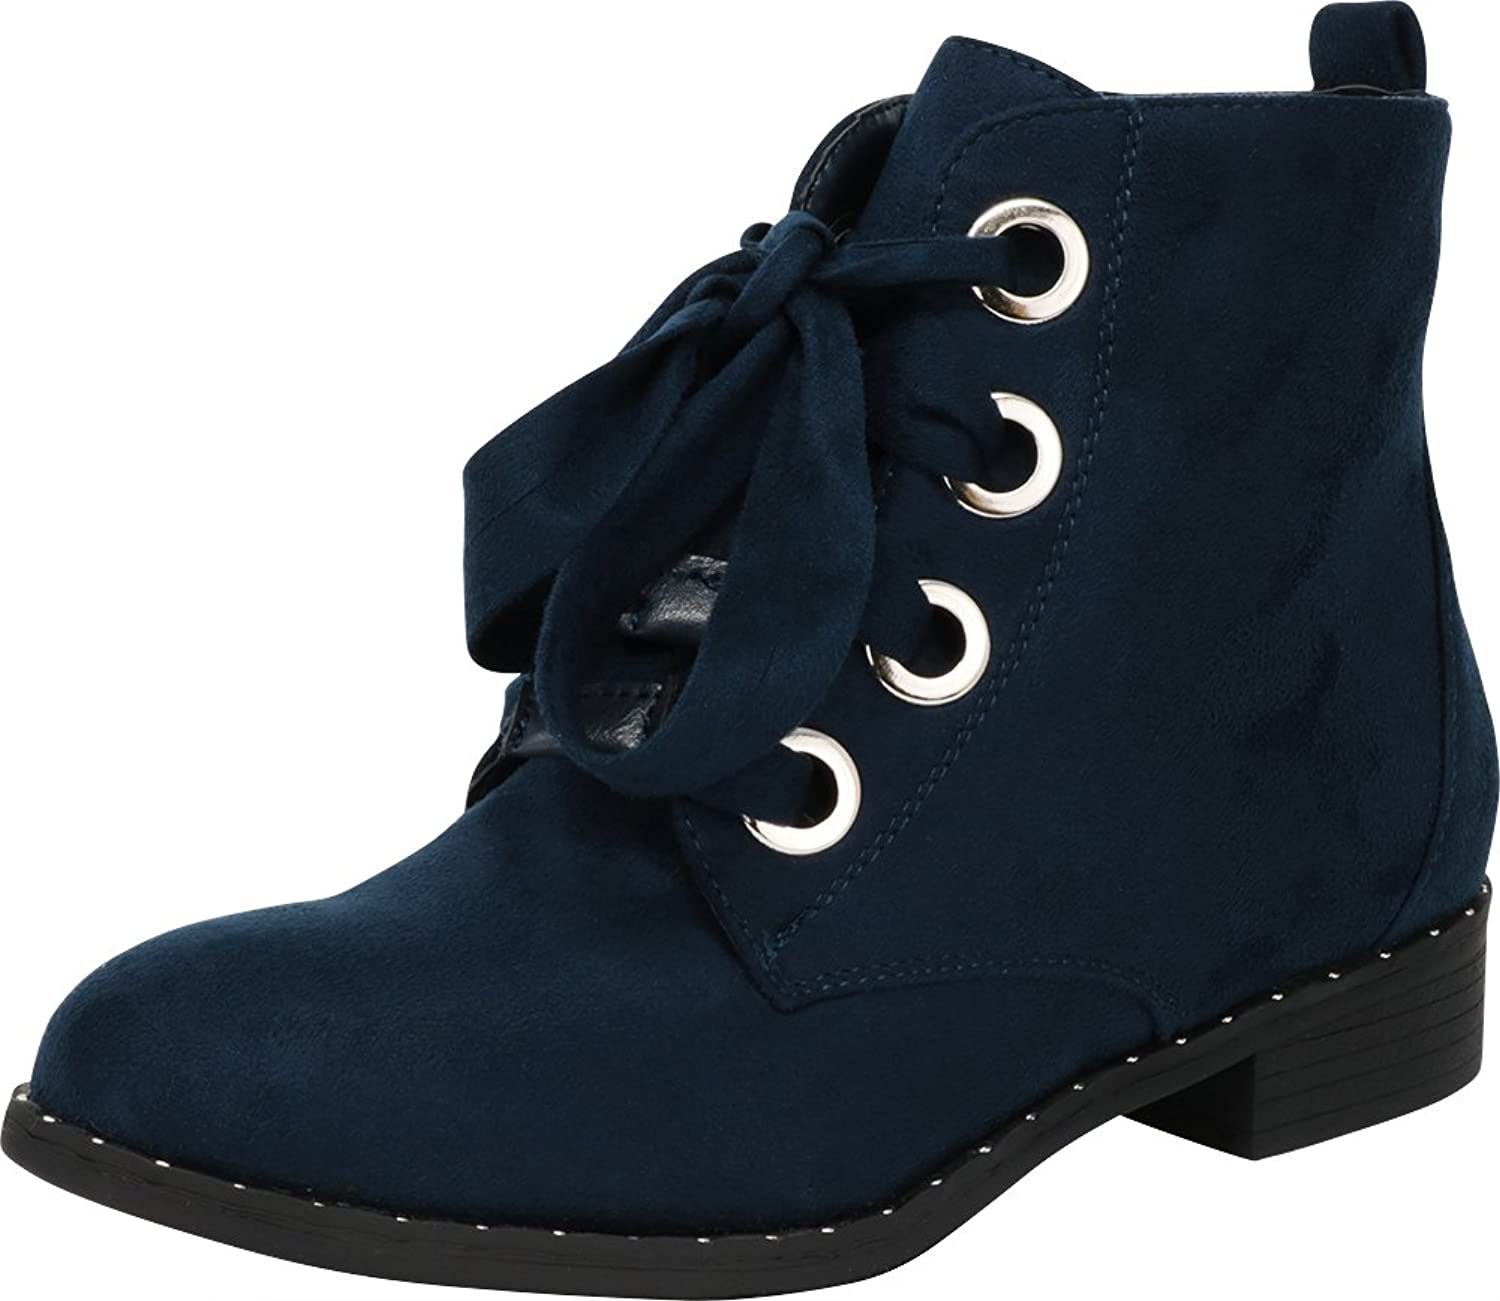 Cambridge Select Women's Round Toe Large Eyelet Lace-up Low Stacked Heel Ankle Bootie